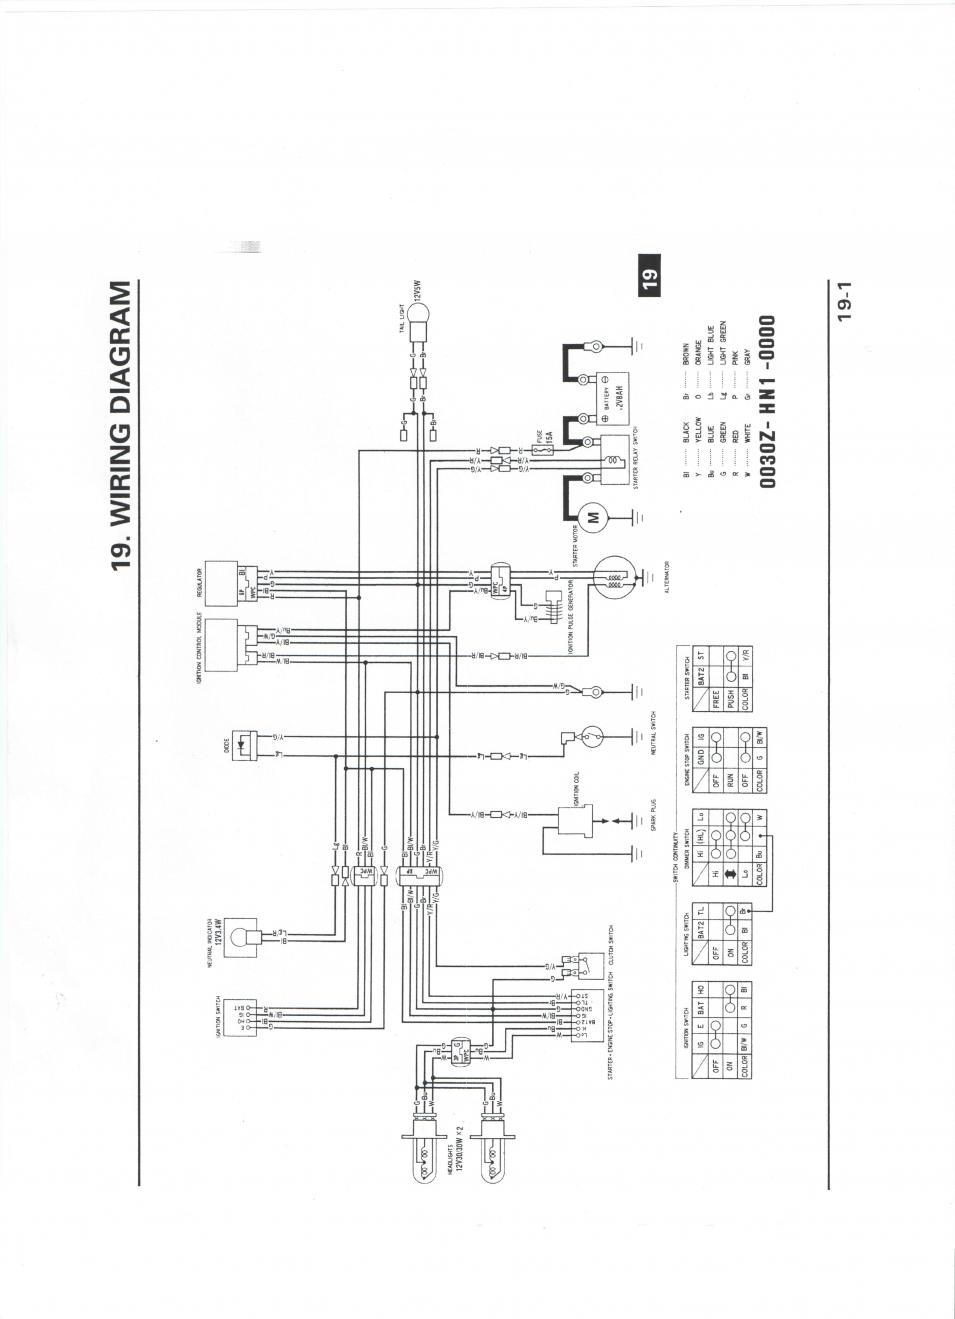 Free Honda 400 Atv Wiring Diagram Auto Electrical 2002 400ex 2001 31 Images